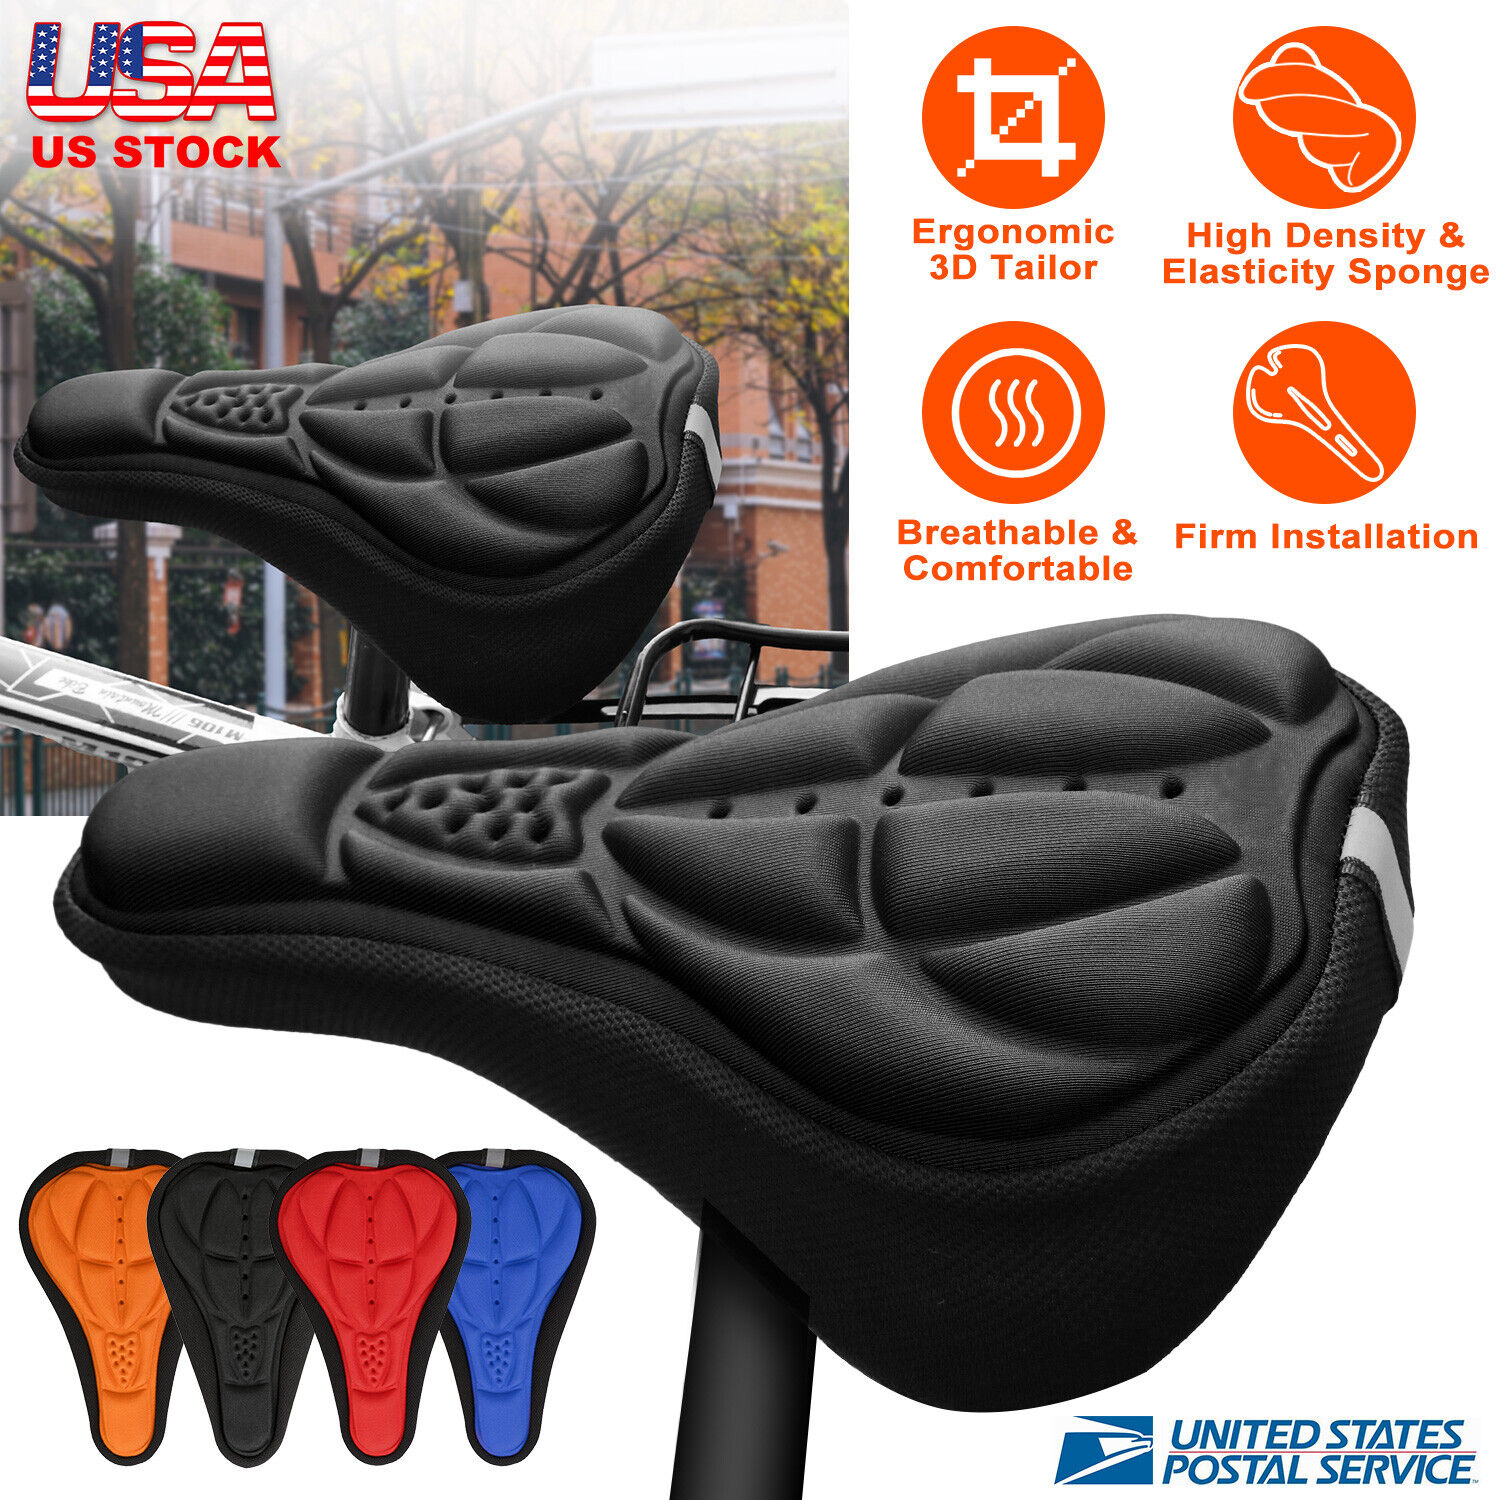 3D Soft Cycling Bicycle Bike Saddle Seat Cover Sponge Outdoor Breathable Cushion